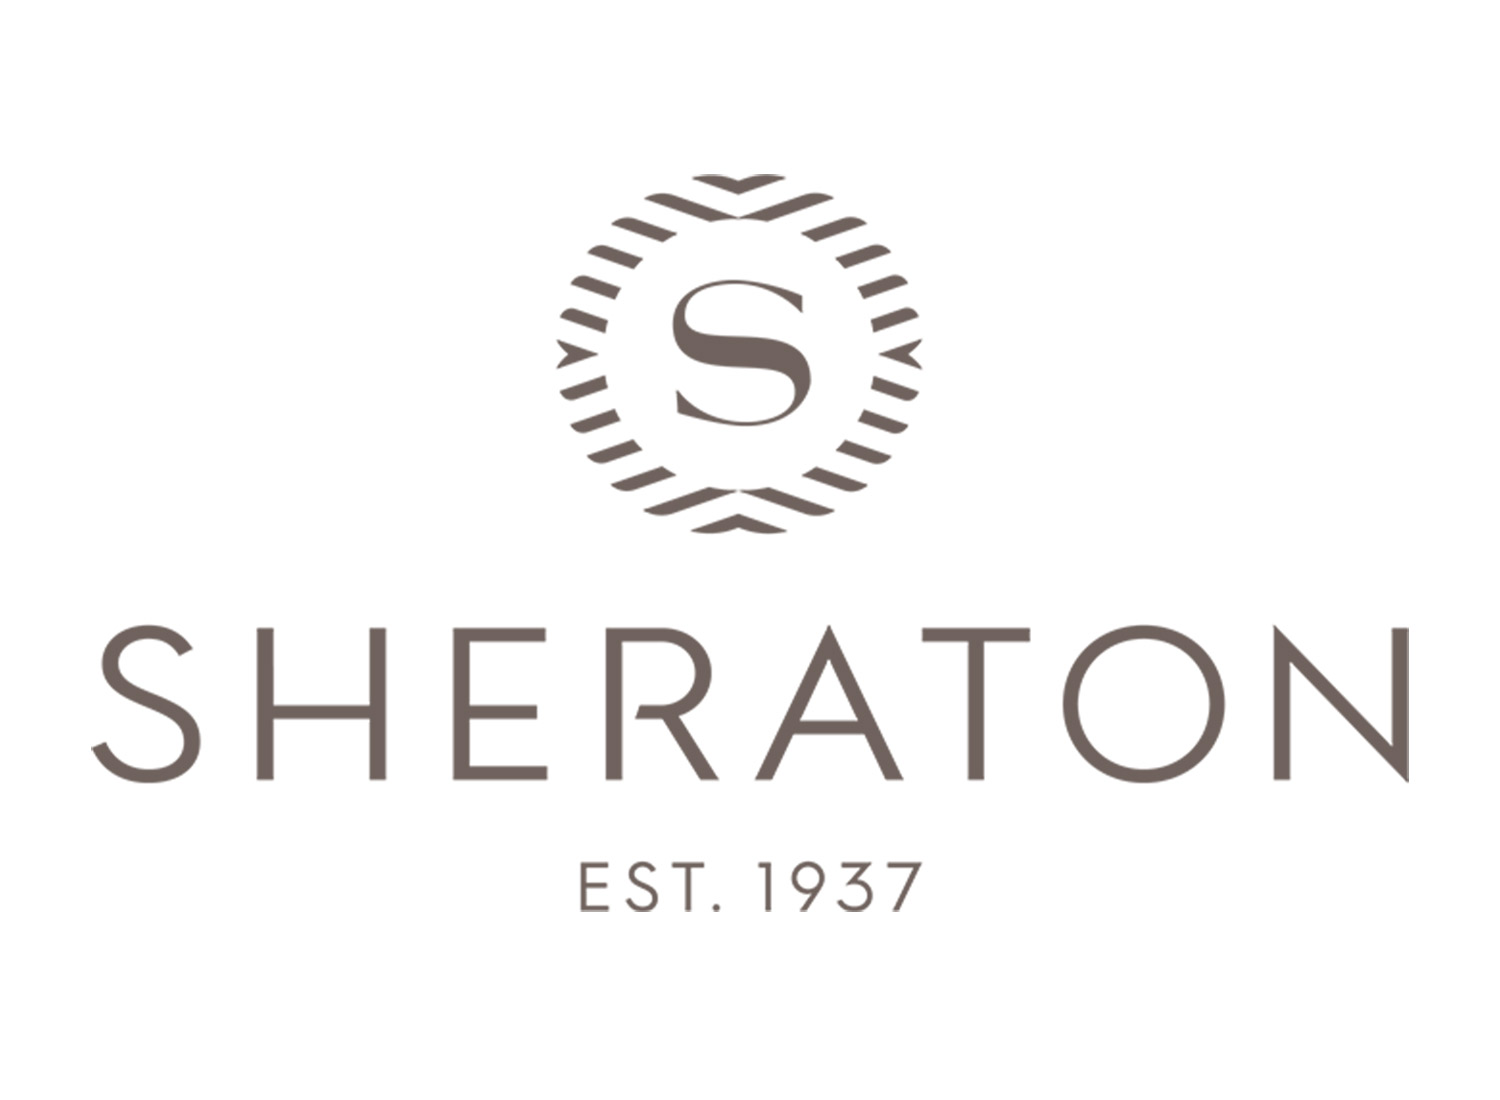 Sheraton Logo, Quelle: Marriott International